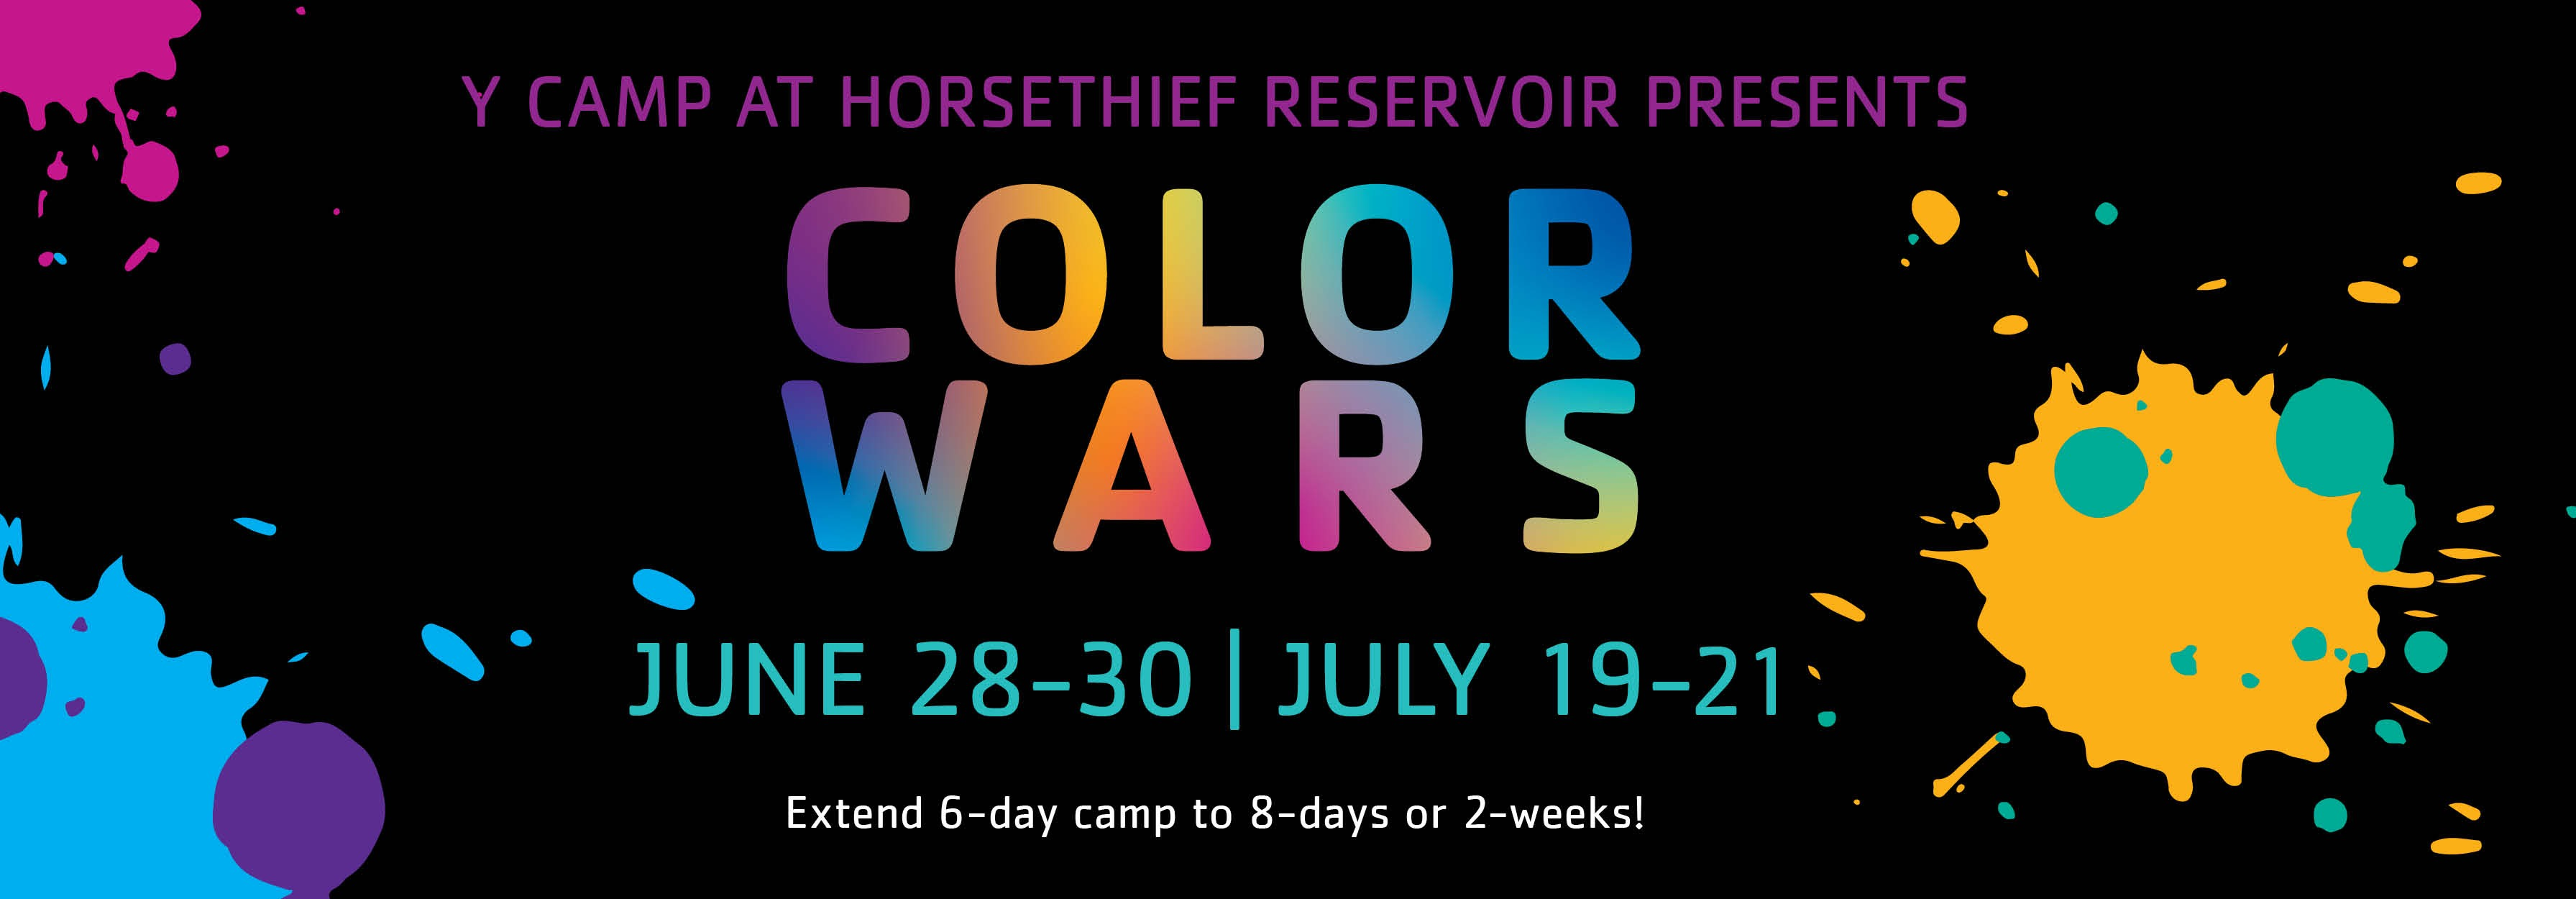 color wars from June 28 - 30 and July 19 - 21 extend 6 day camp to 8 days or 2 weeks!